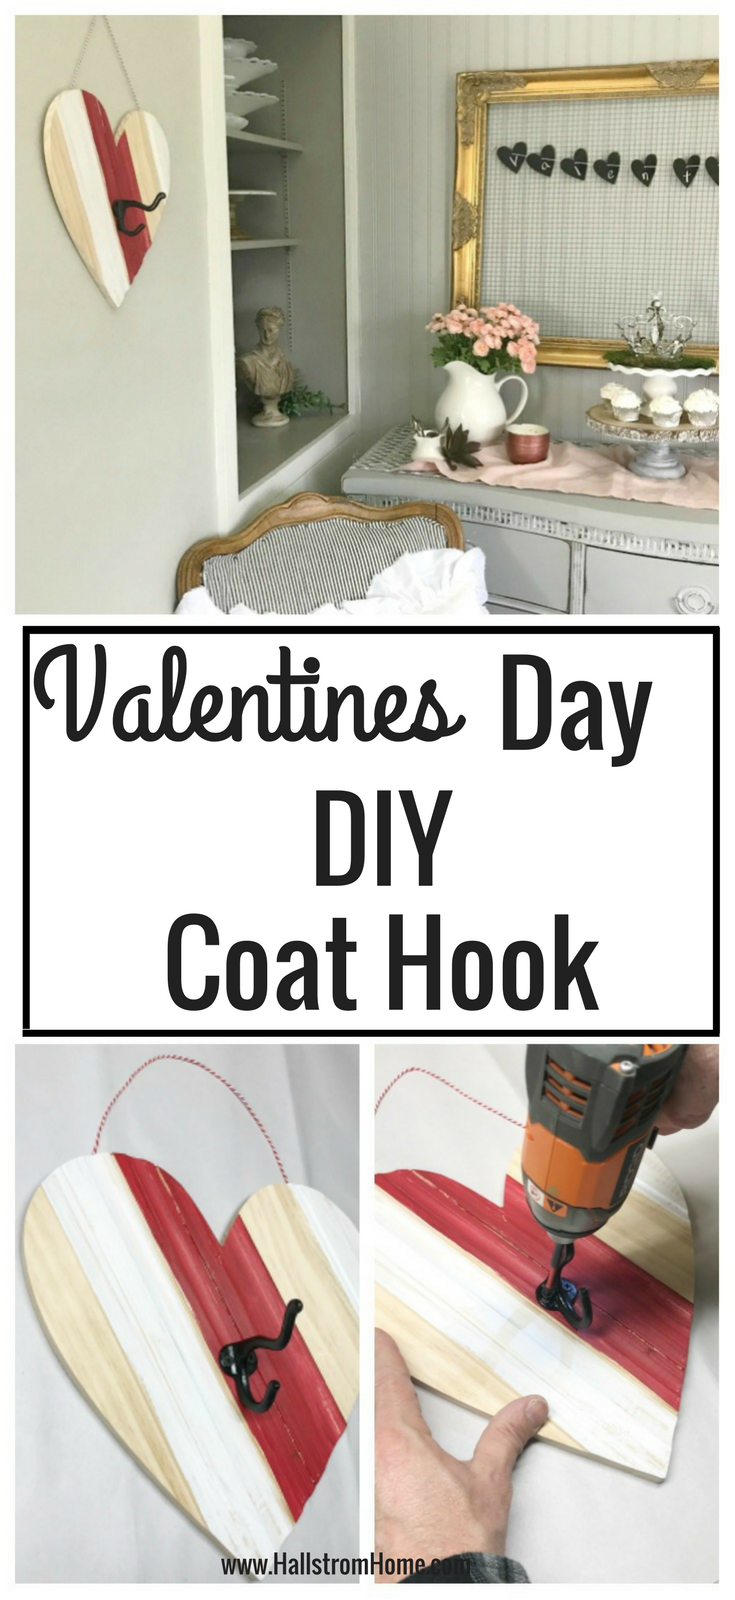 Pinterest image Valentines day diy coat hook. top image coat hook on wall bottom 2 nailing hook on heart